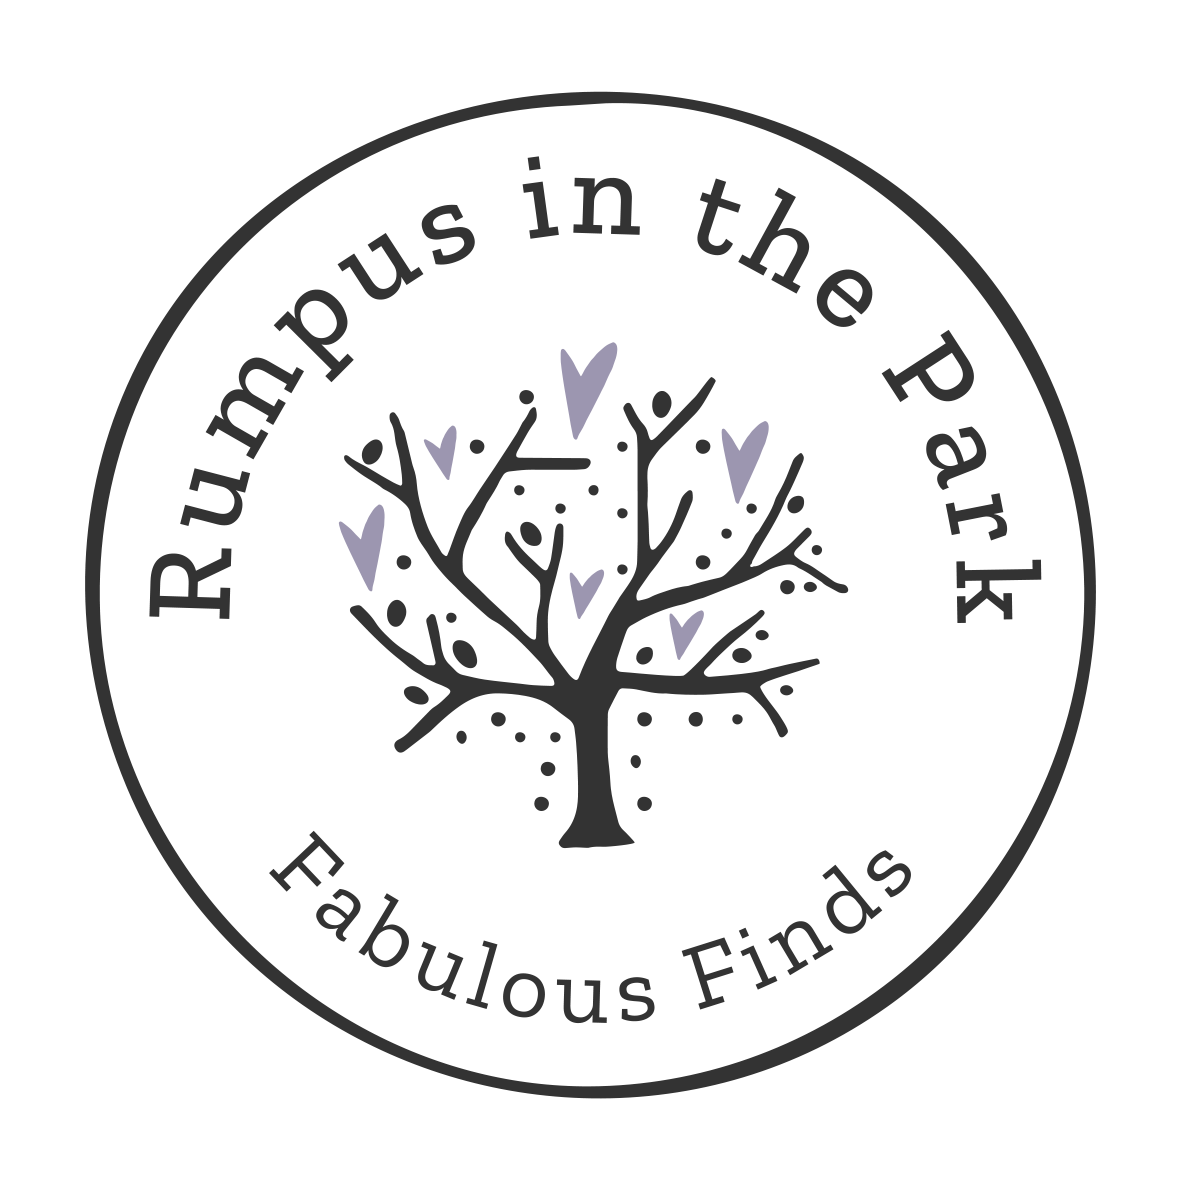 Rumpus in the Park